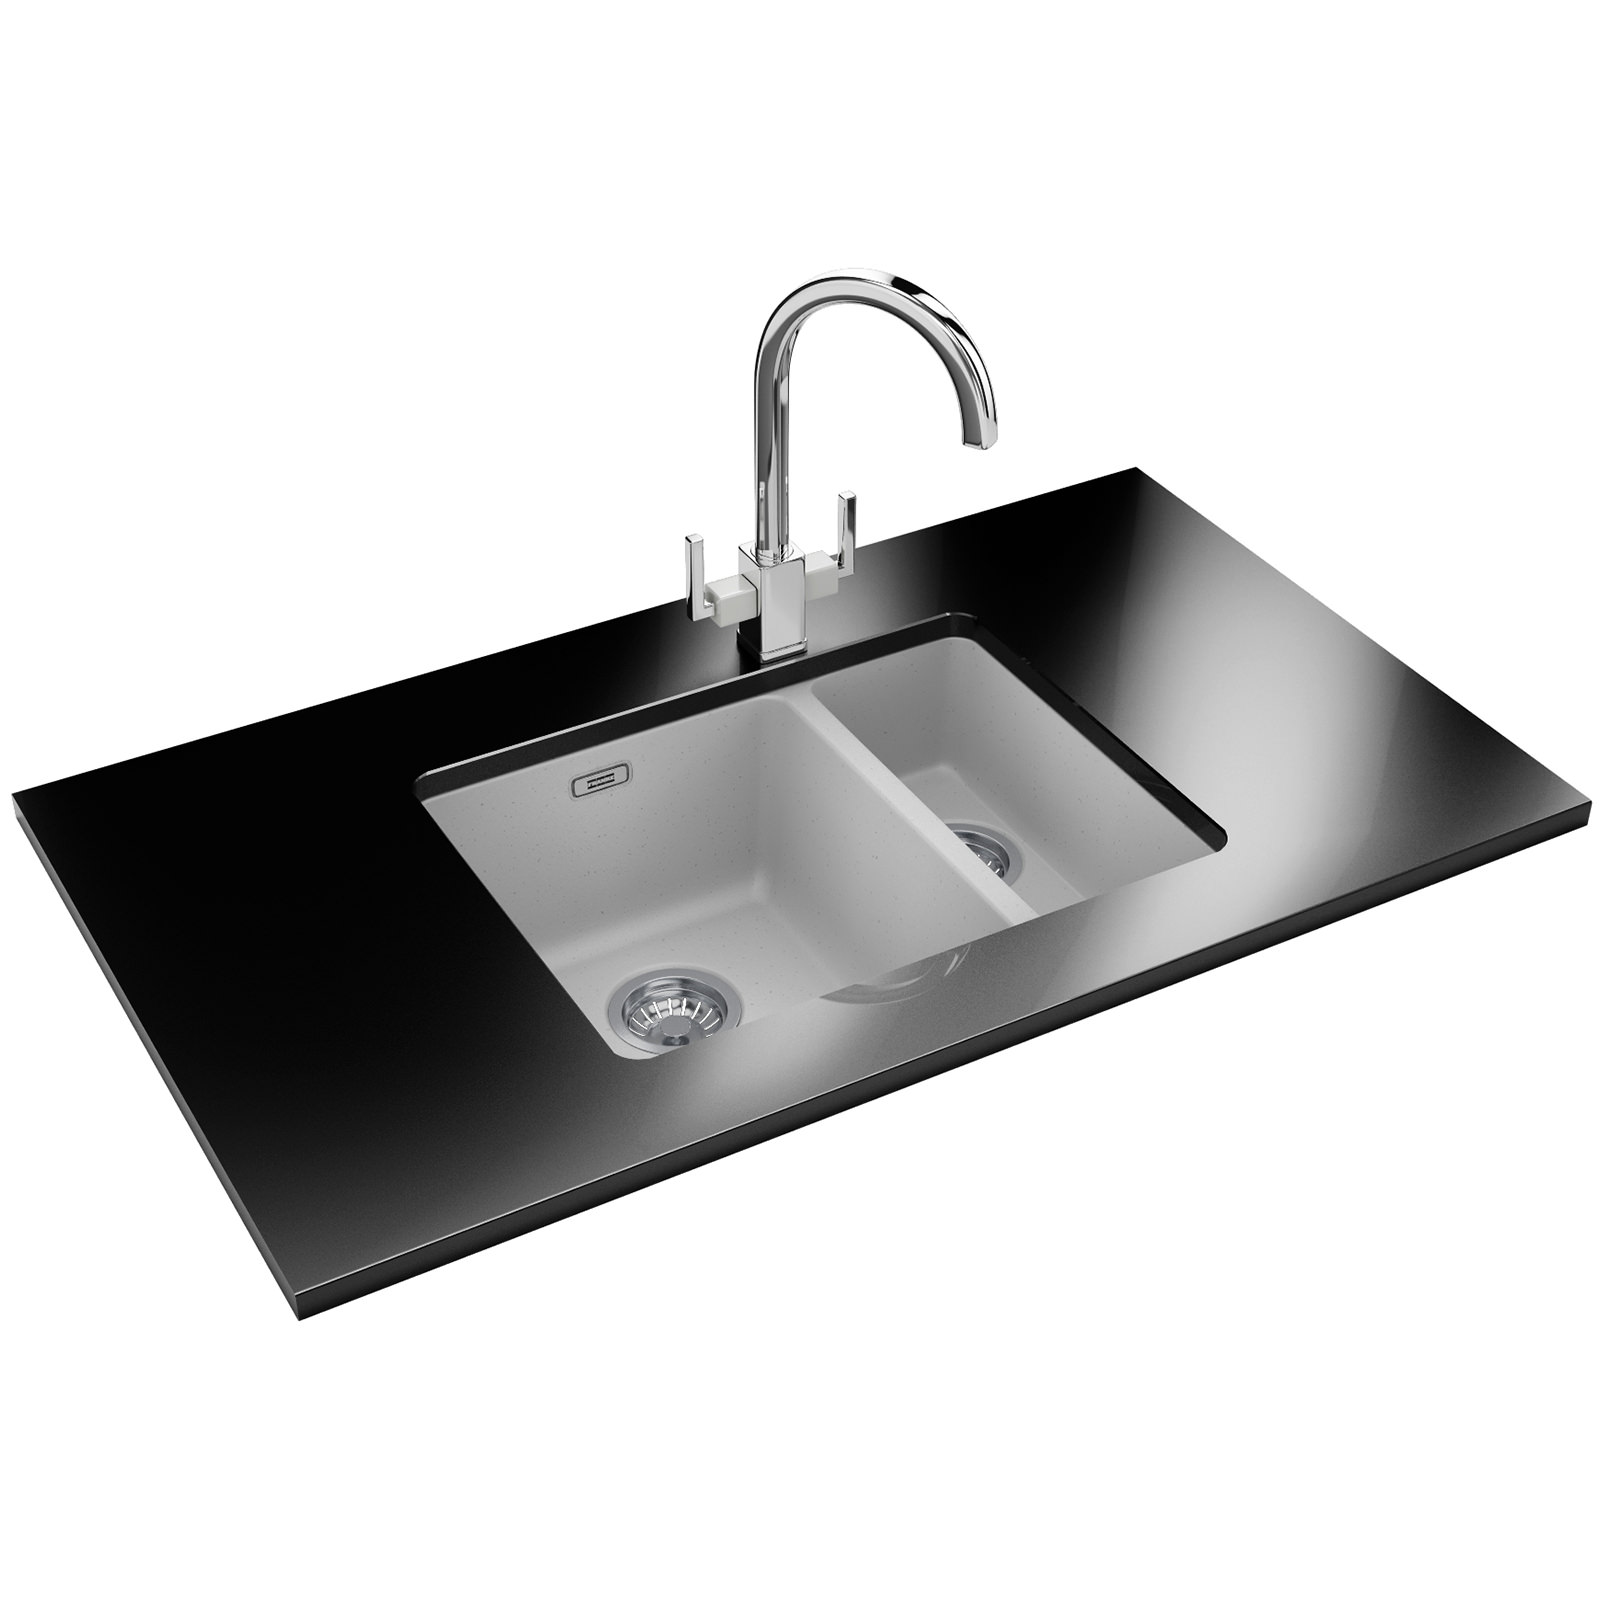 Franke Sinks And Taps : Franke Kubus Designer Pack KBG 160 Fragranite Polar White Sink And Tap ...